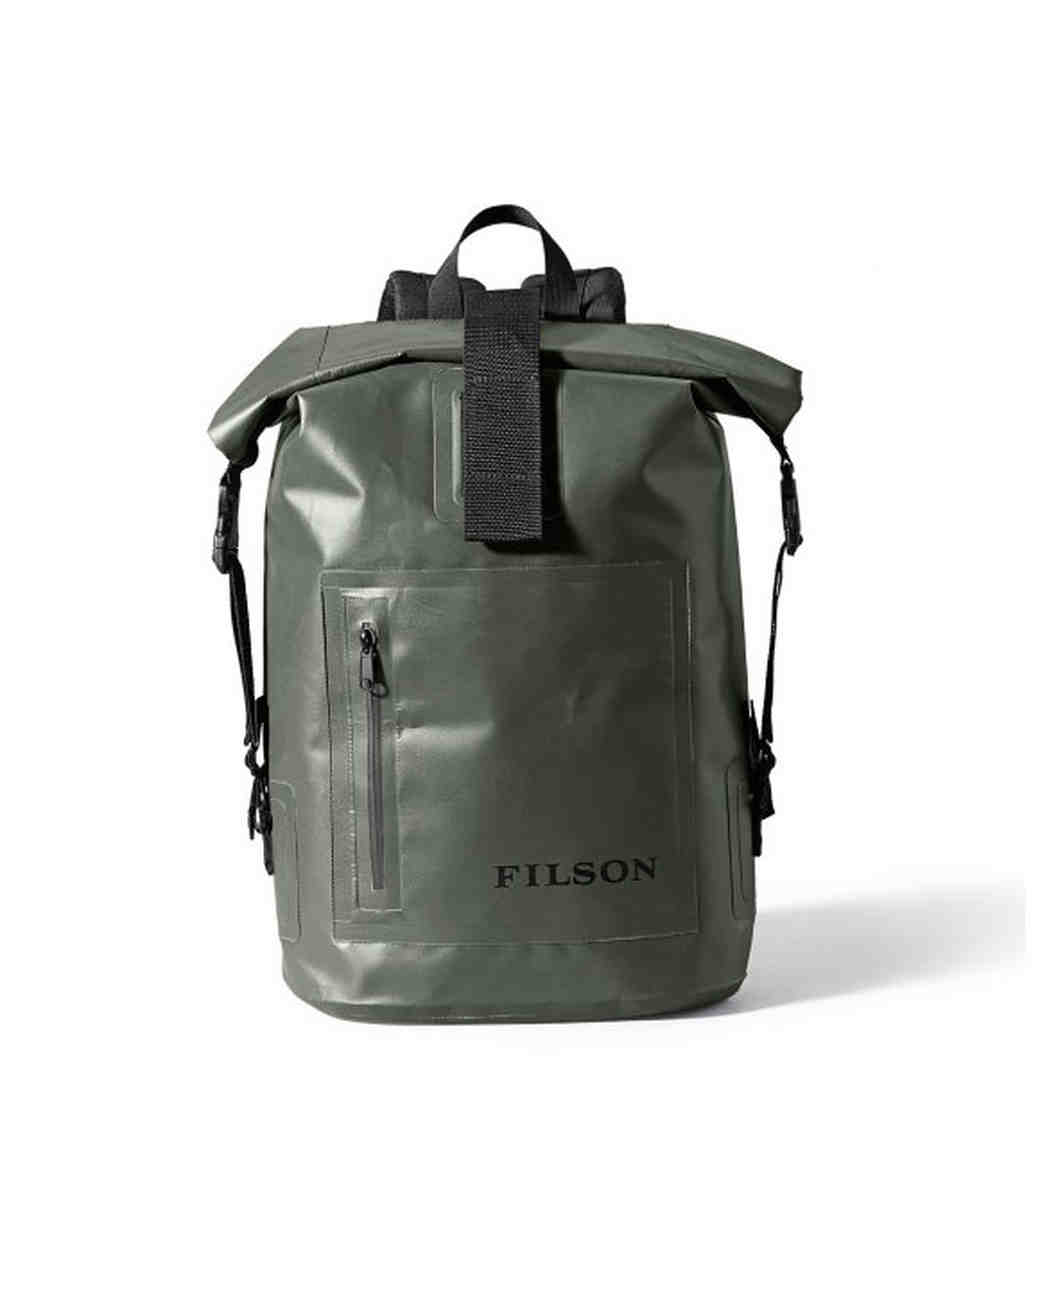 valentines-day-gifts-for-him-filson-dry-bag-backpack-0216.jpg